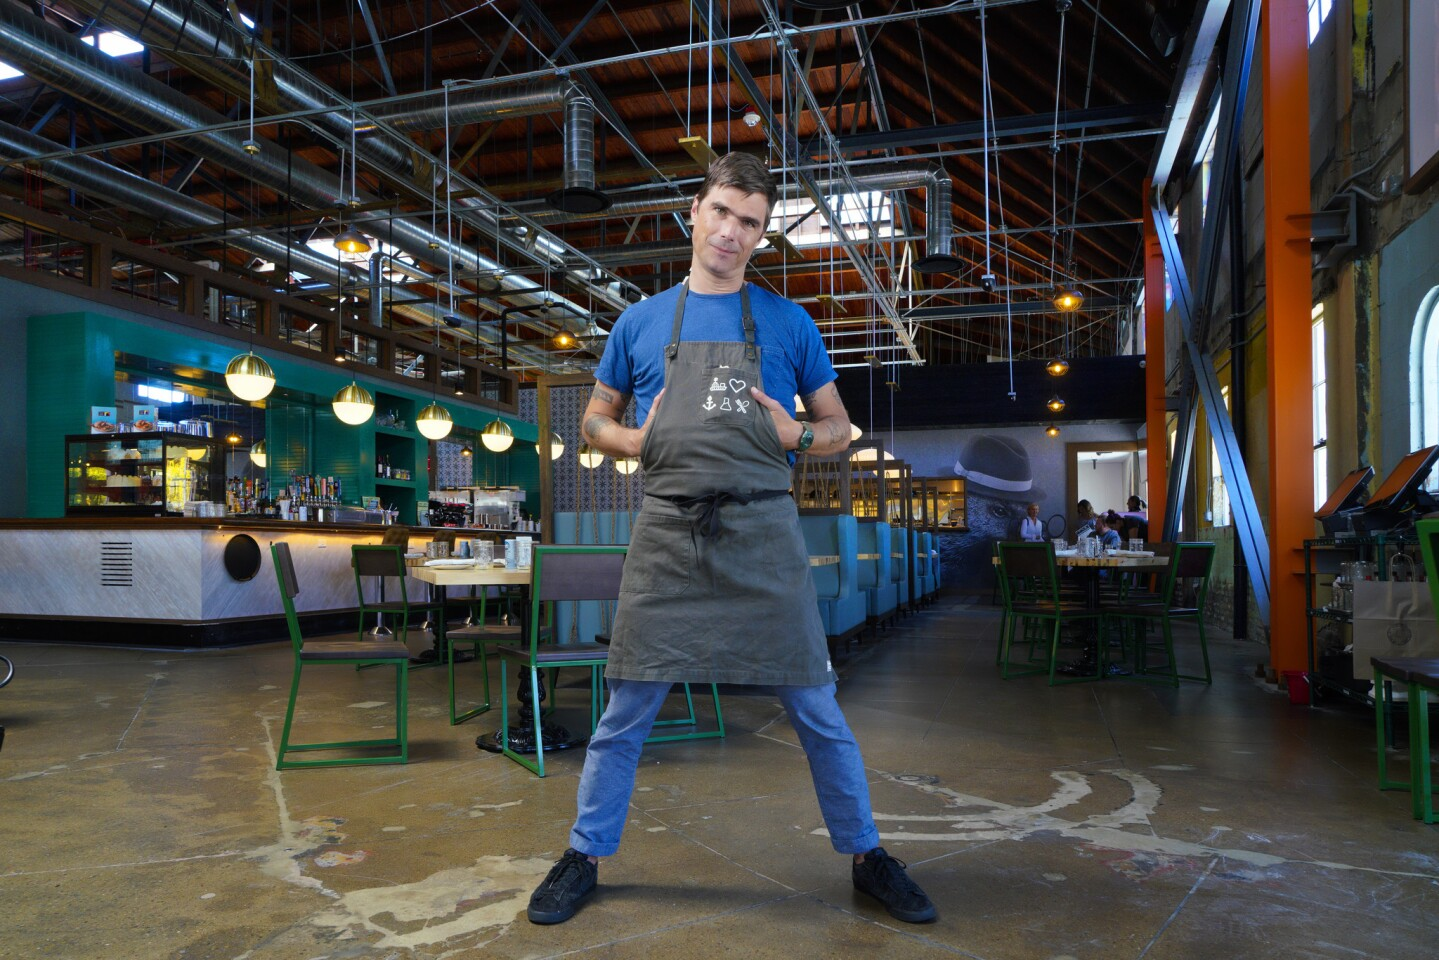 Hugh Acheson, chef and partner in the new Punch Bowl Social which opens this weekend in the East Village of downtown, San Diego.